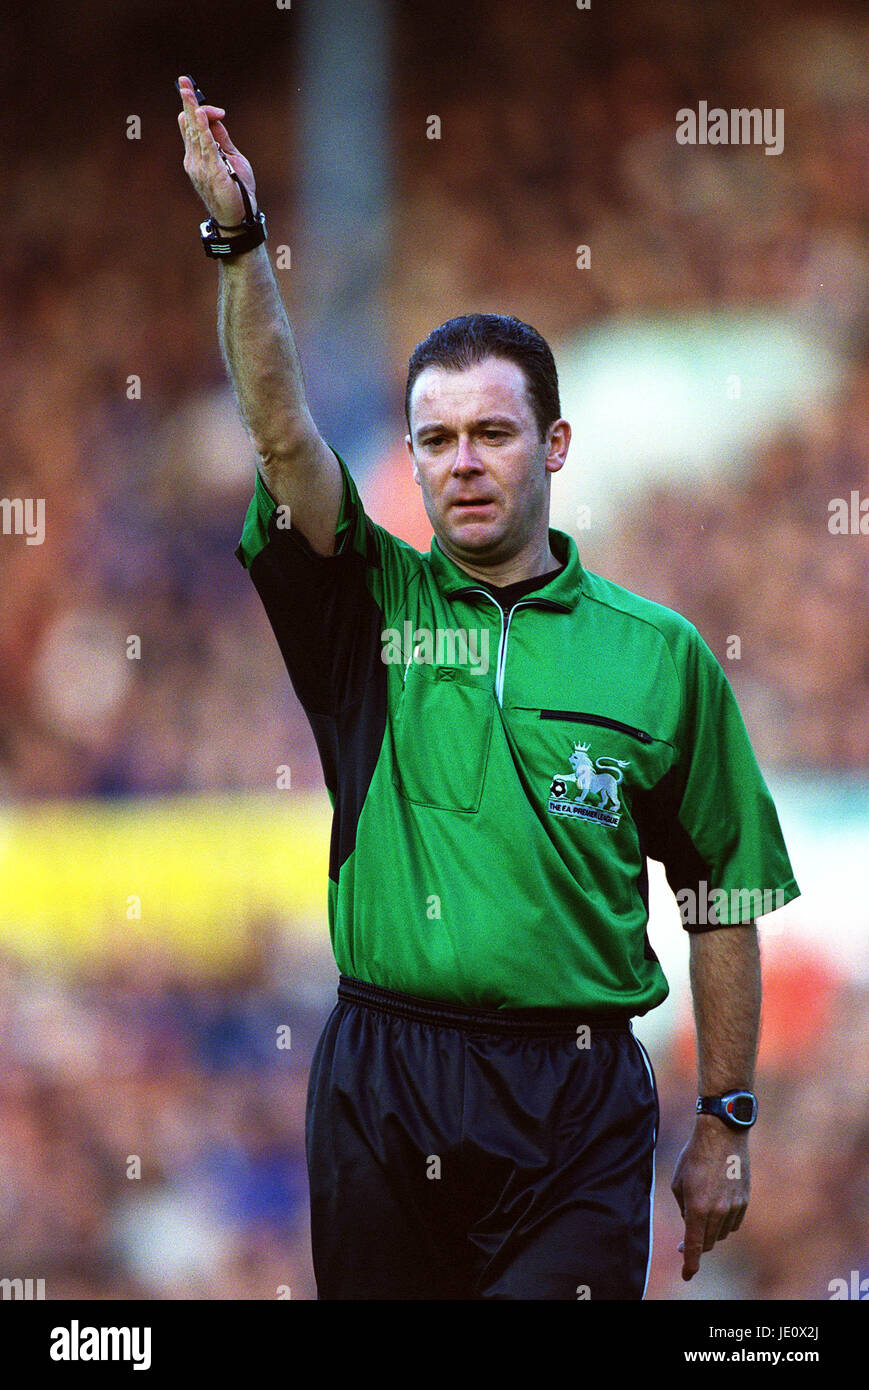 ROB STYLES PREMIERSHIP REFEREE ELLAND ROAD LEEDS 16 December 2001 - Stock Image